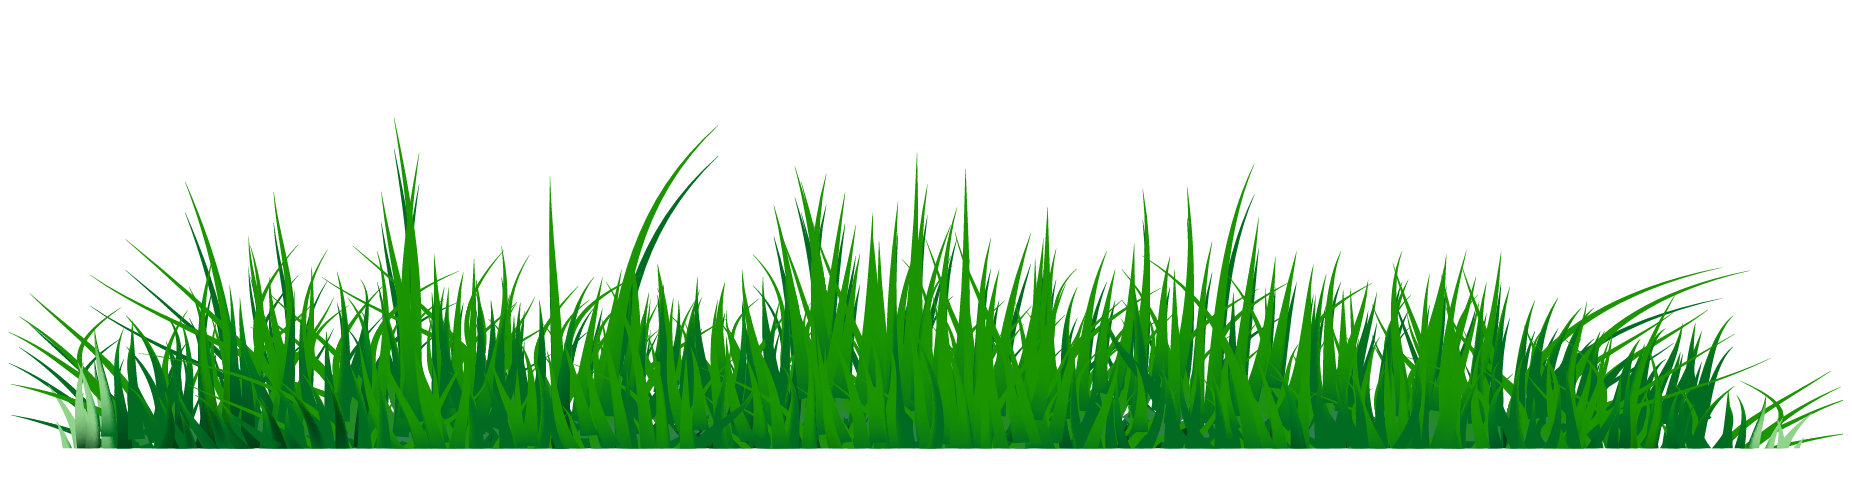 png black and white Lawn safari free on. Grass clipart